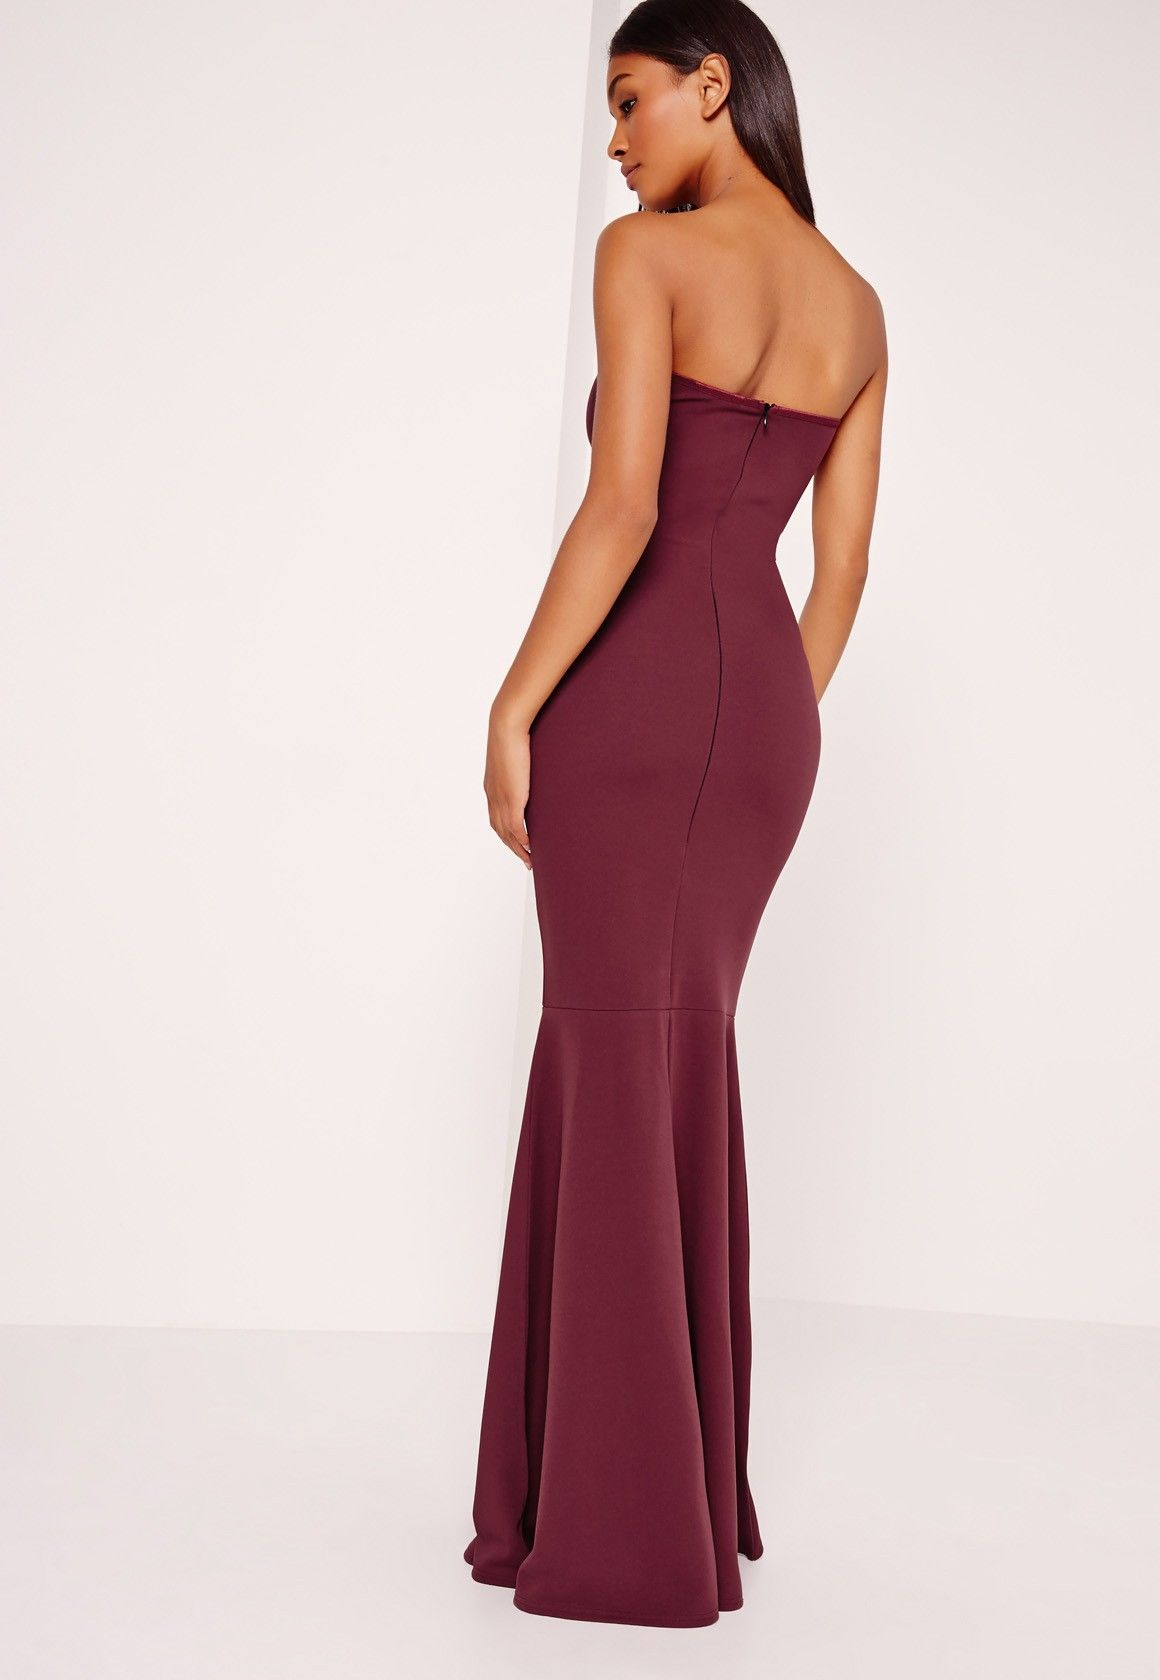 7efc96d317bff Missguided - Scuba Bandeau Fishtail Maxi Dress Burgundy